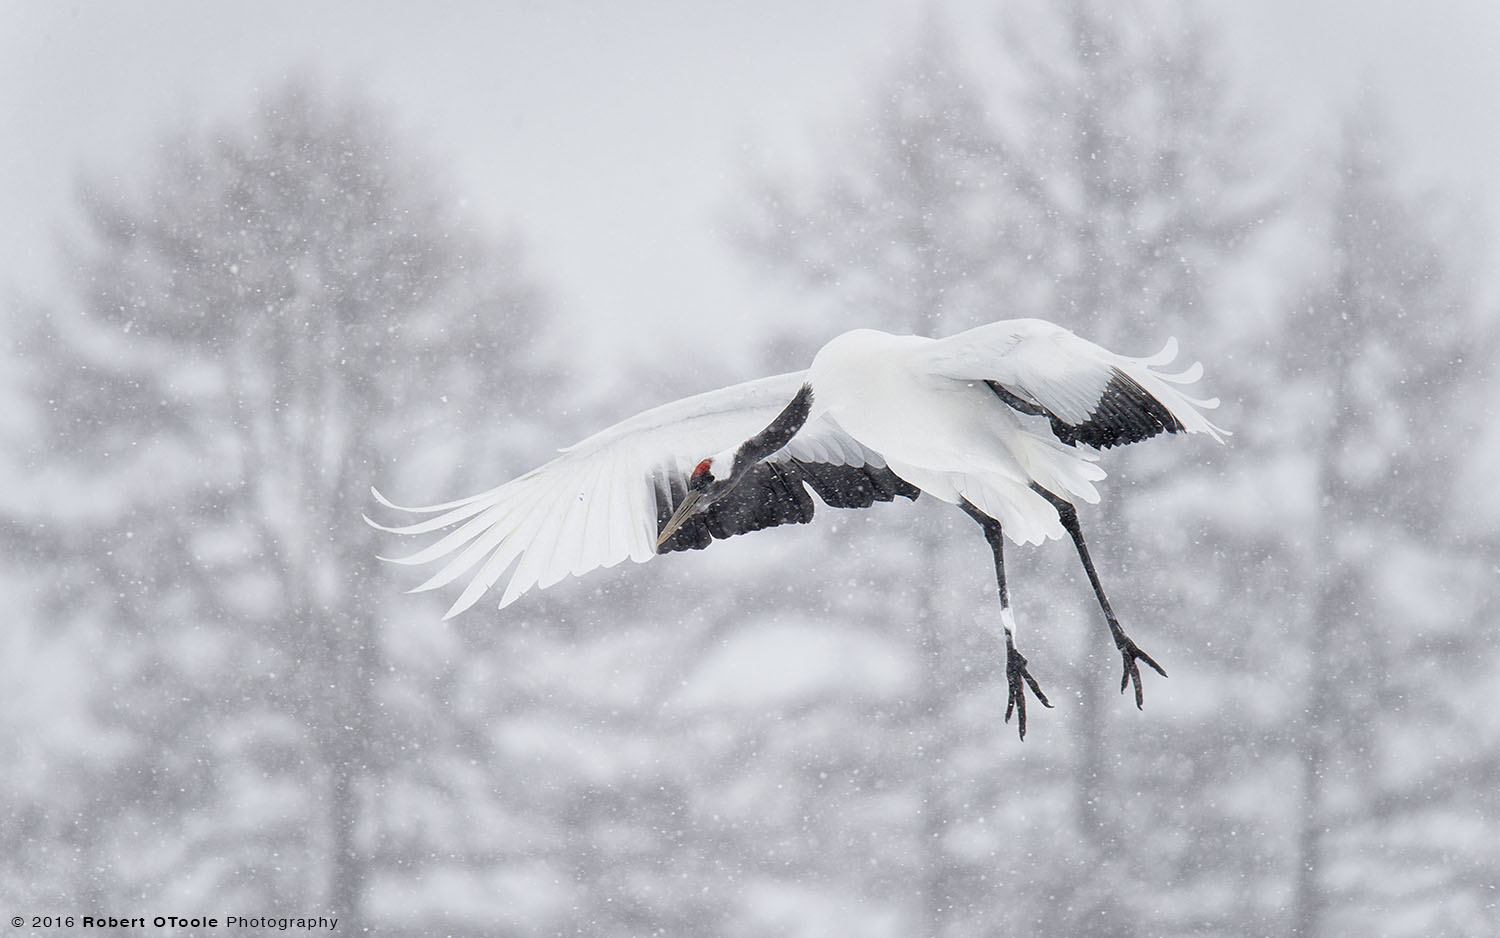 Japanese Red-Crowned Crane Landing on Heavy Snow